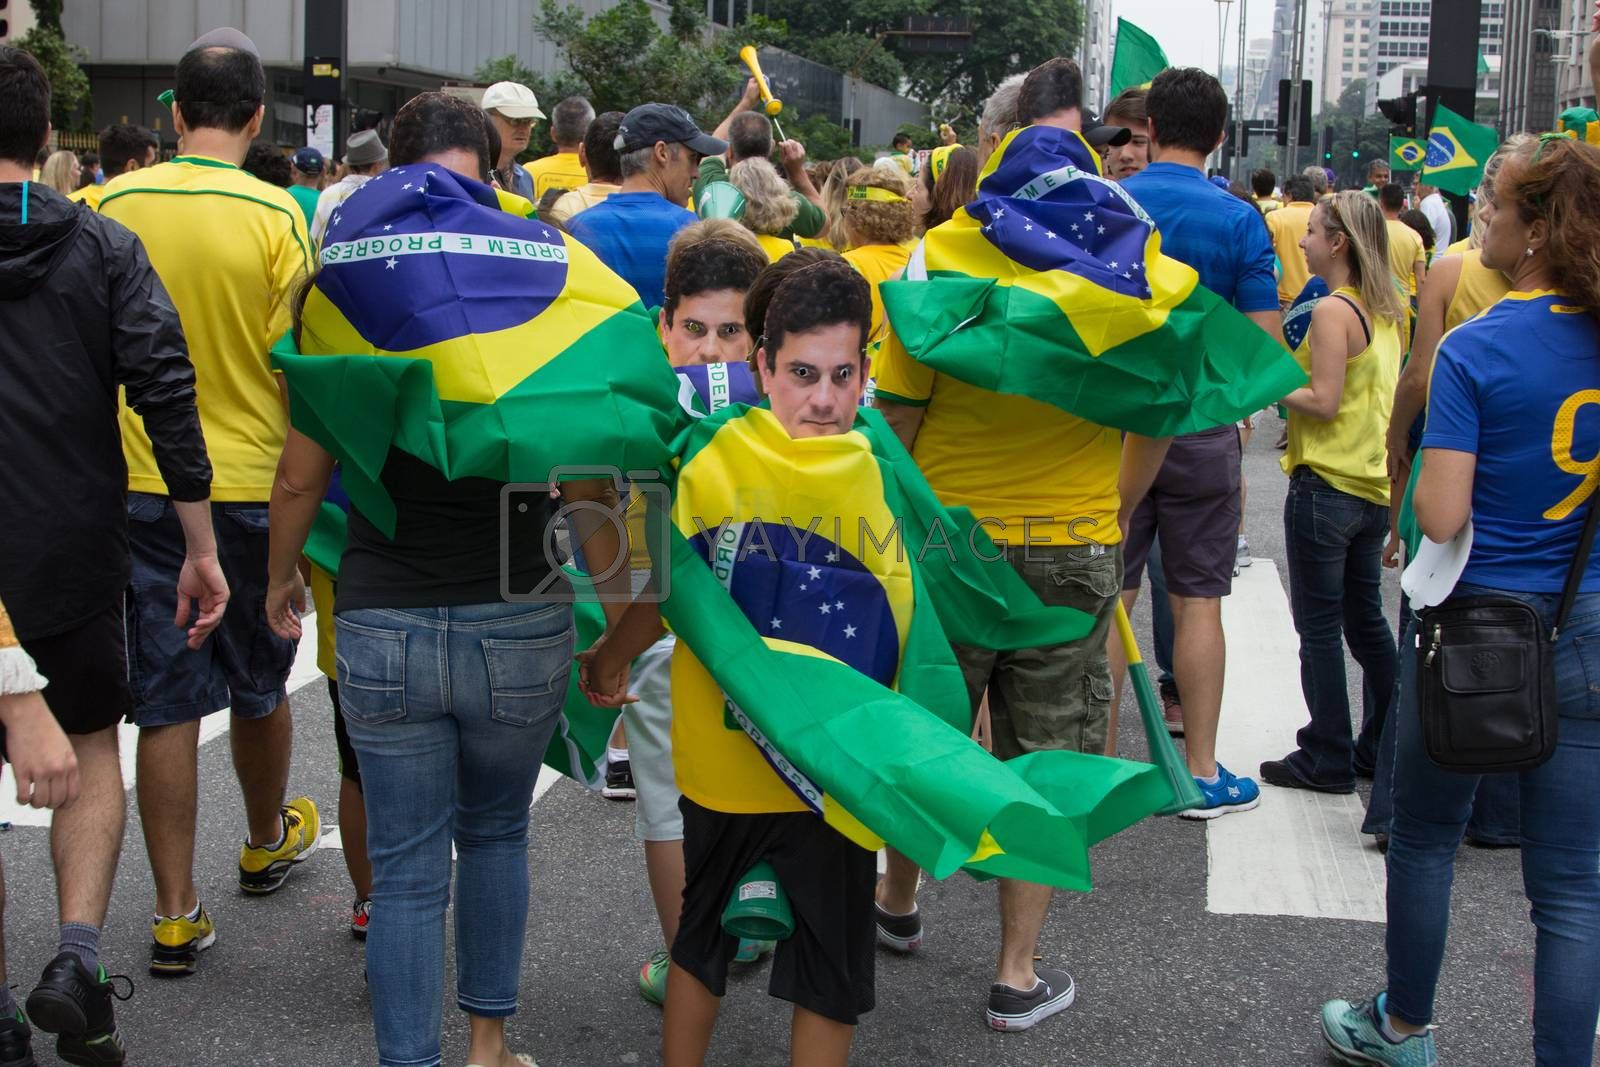 Sao Paulo Brazil March 13, 2016: An unidentified group of people